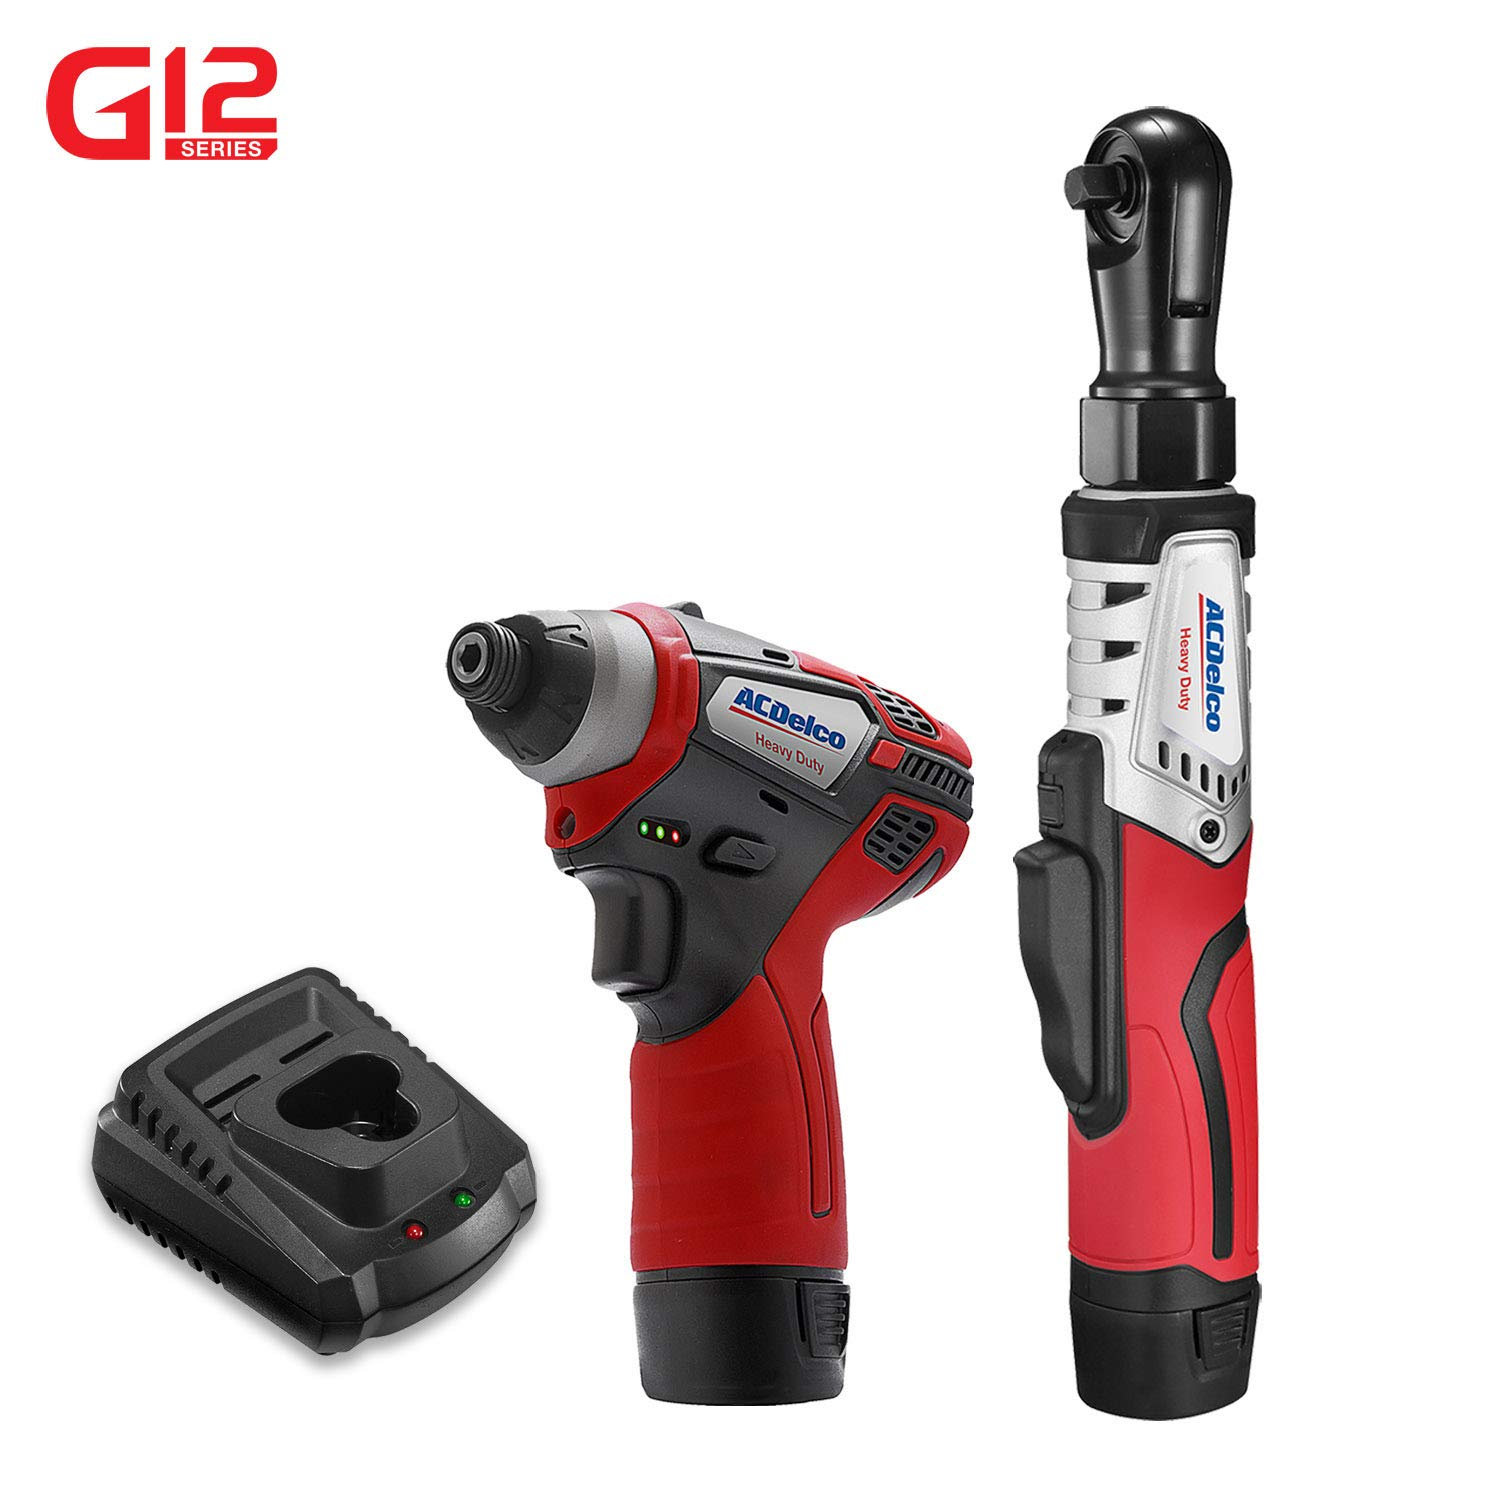 ACDelco G12 Series 2-Tool Combo Kit- 3/8 in. Brushless Ratchet Wrench + 1/4 in. Hex Power Impact Driver, two battery, charger,ARW12103- K2